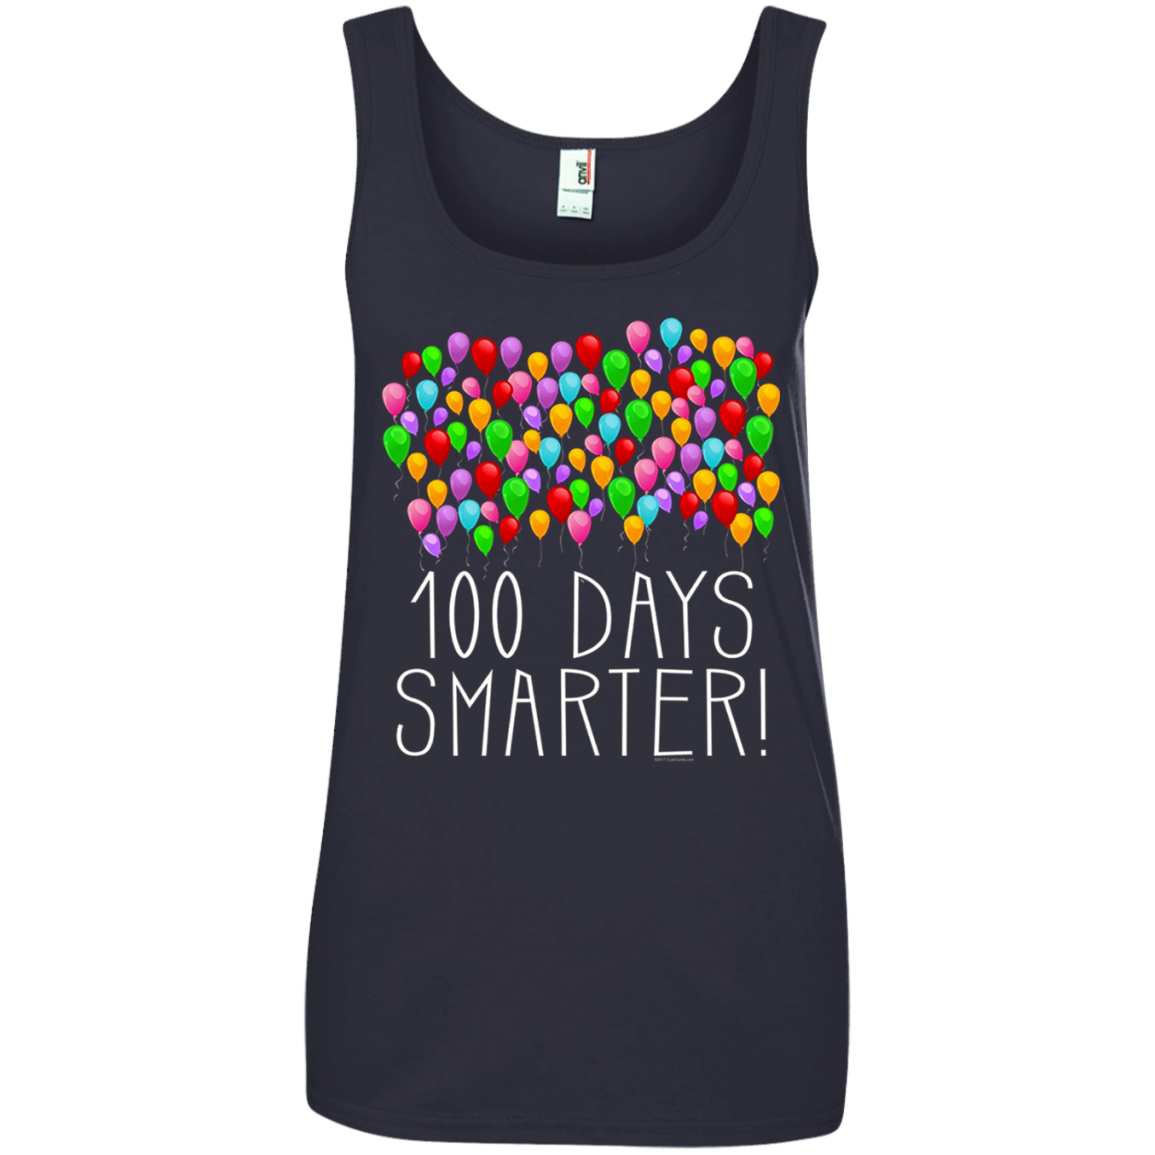 100 Balloons 100th Day of School Teacher Student T shirt hoodie sweater Tank Top 882